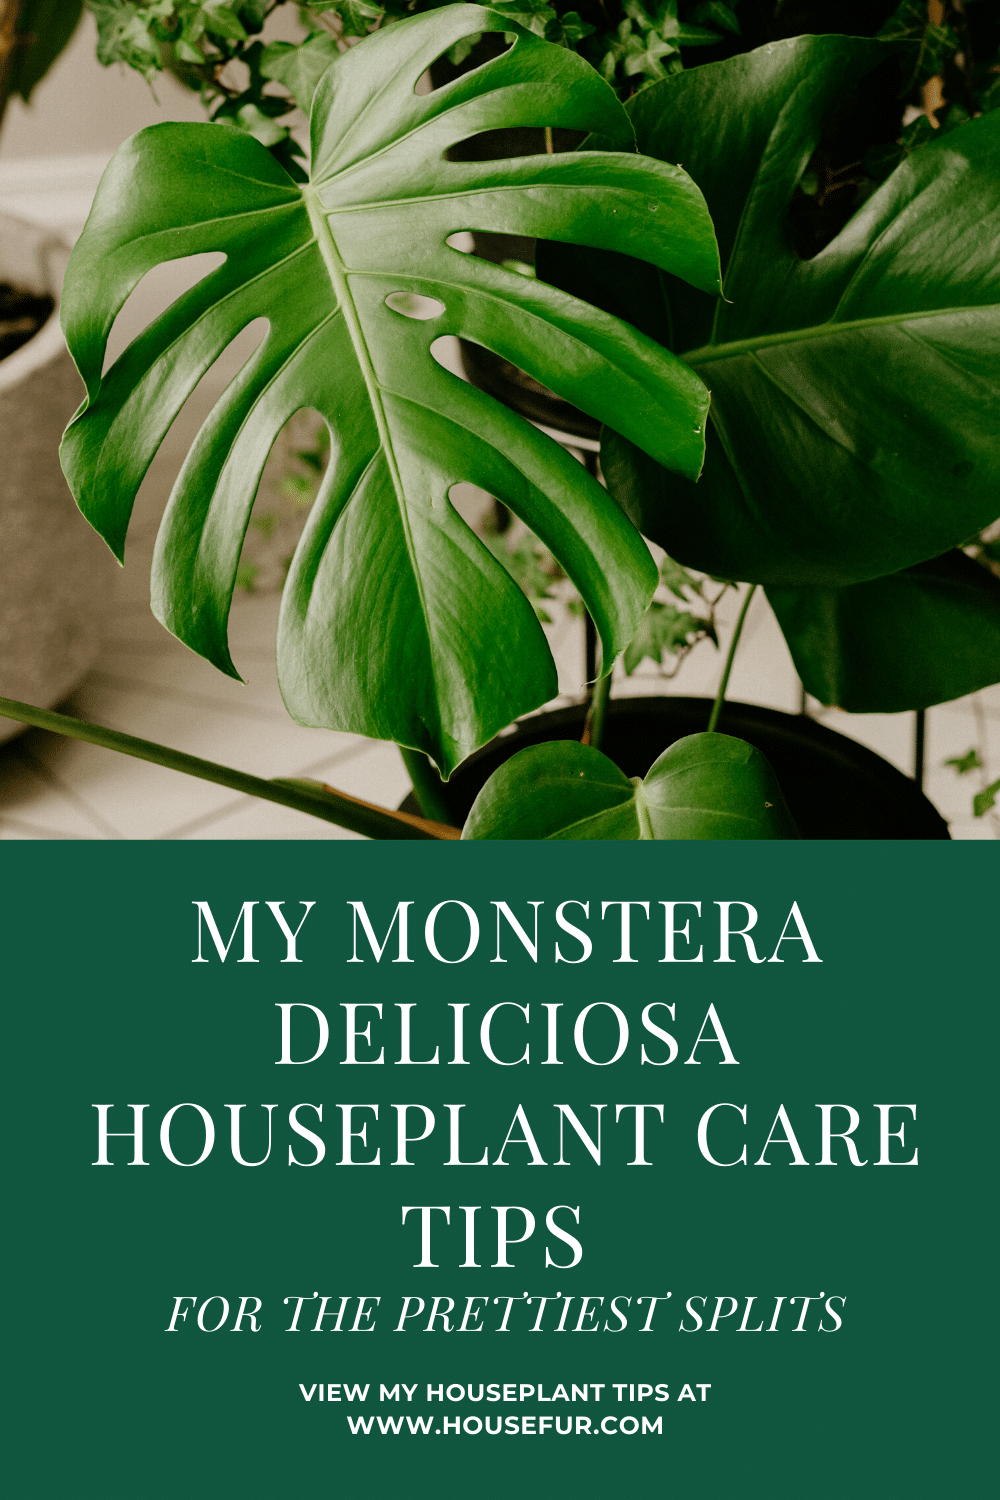 My Monstera Deliciosa Houseplant Care Tips For The Prettiest Splits House Fur House Plant Care Monstera Deliciosa Monstera Deliciosa Care